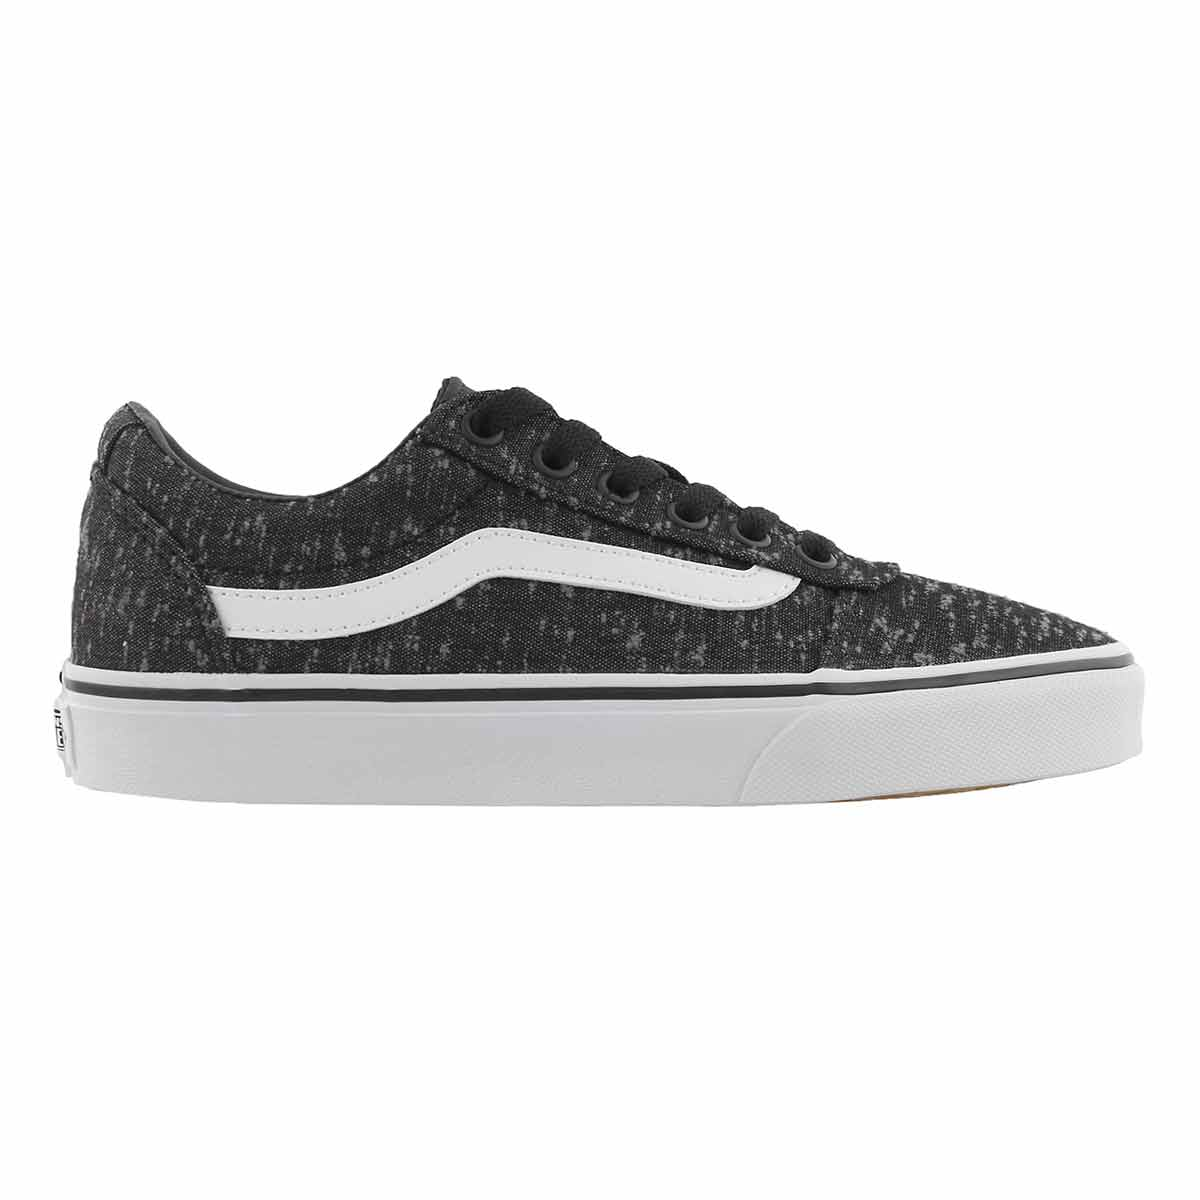 Lds Ward marled blk lace up snkr